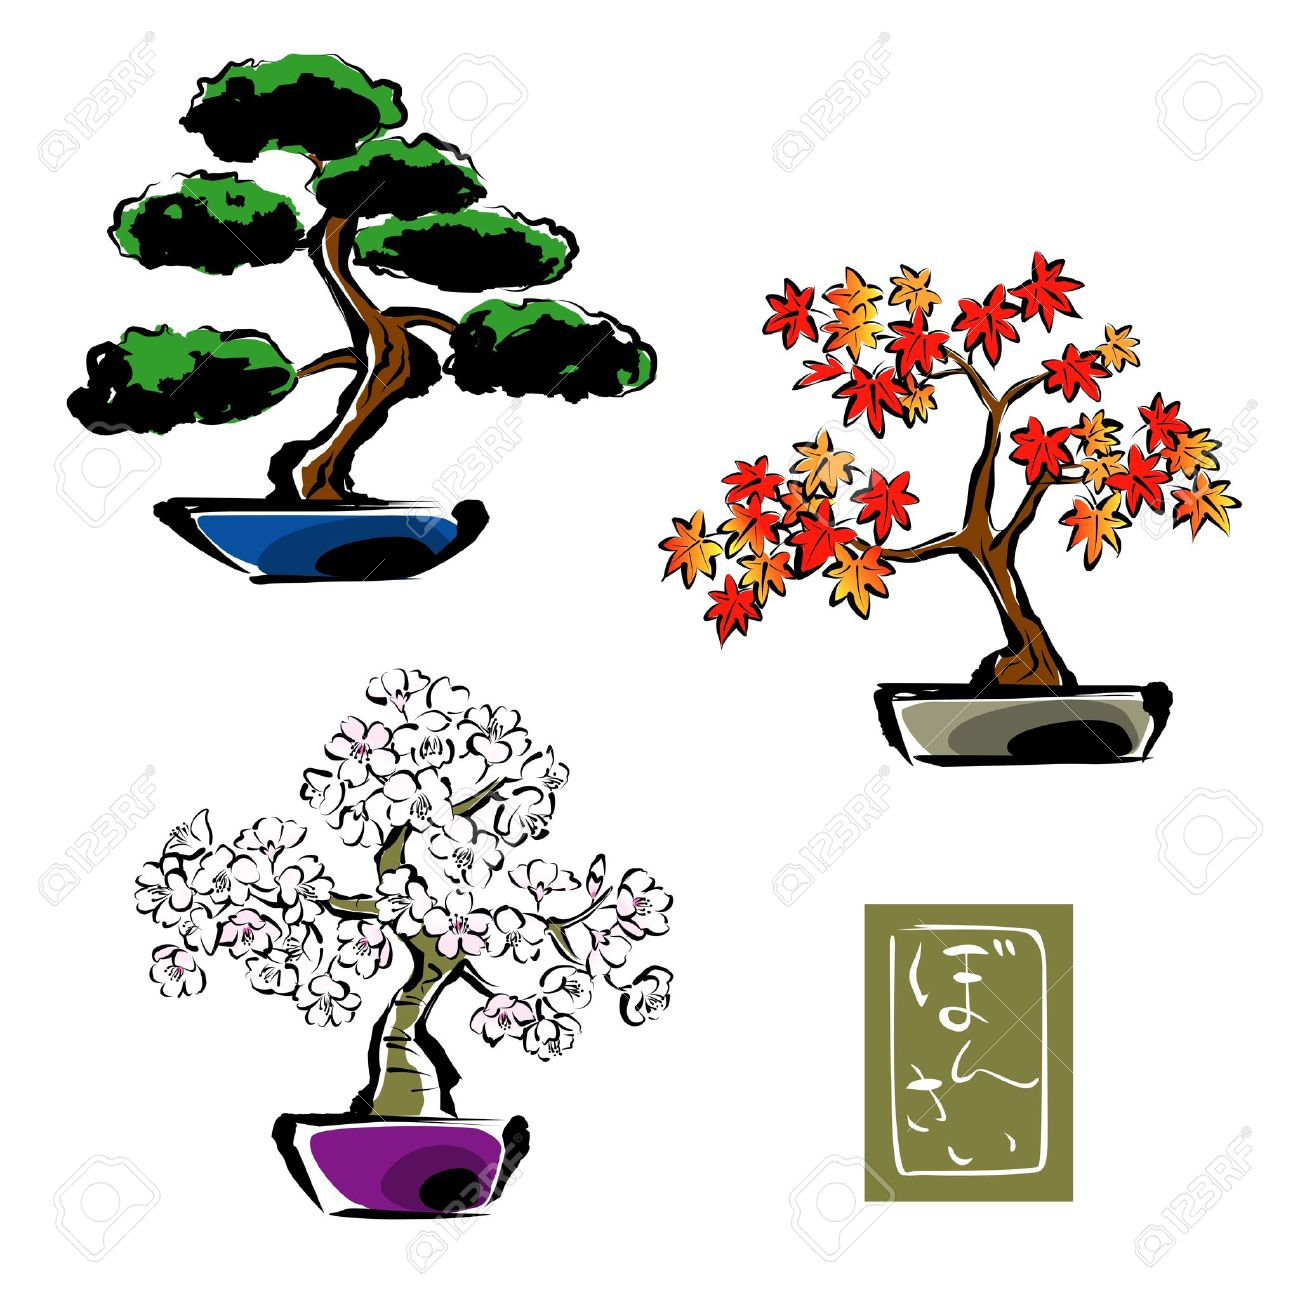 Ume Tree clipart #16, Download drawings